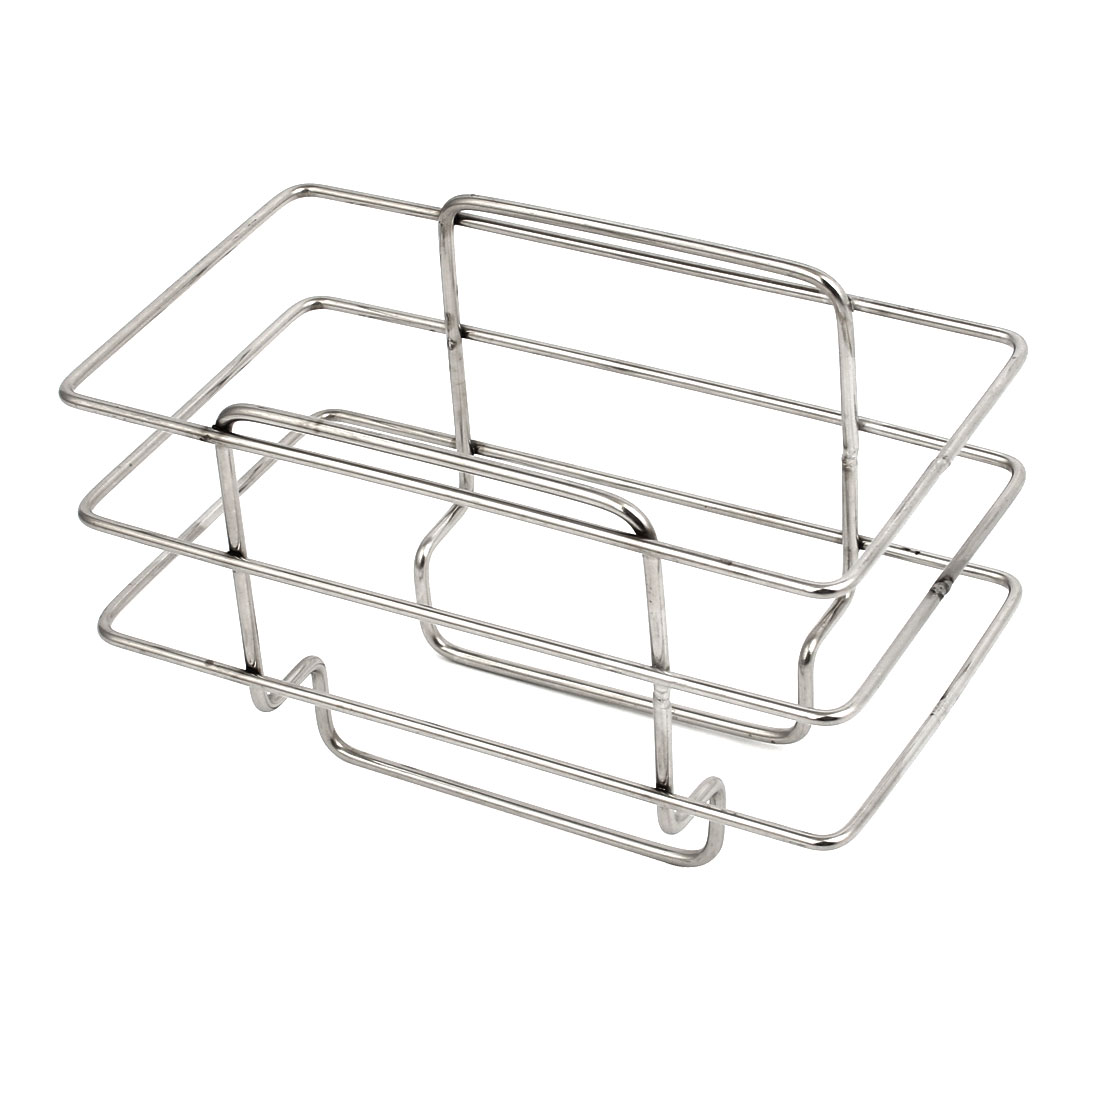 Kitchen 201 Stainless Steel Sponge Soap Rack Drainer Holder Sink Caddy